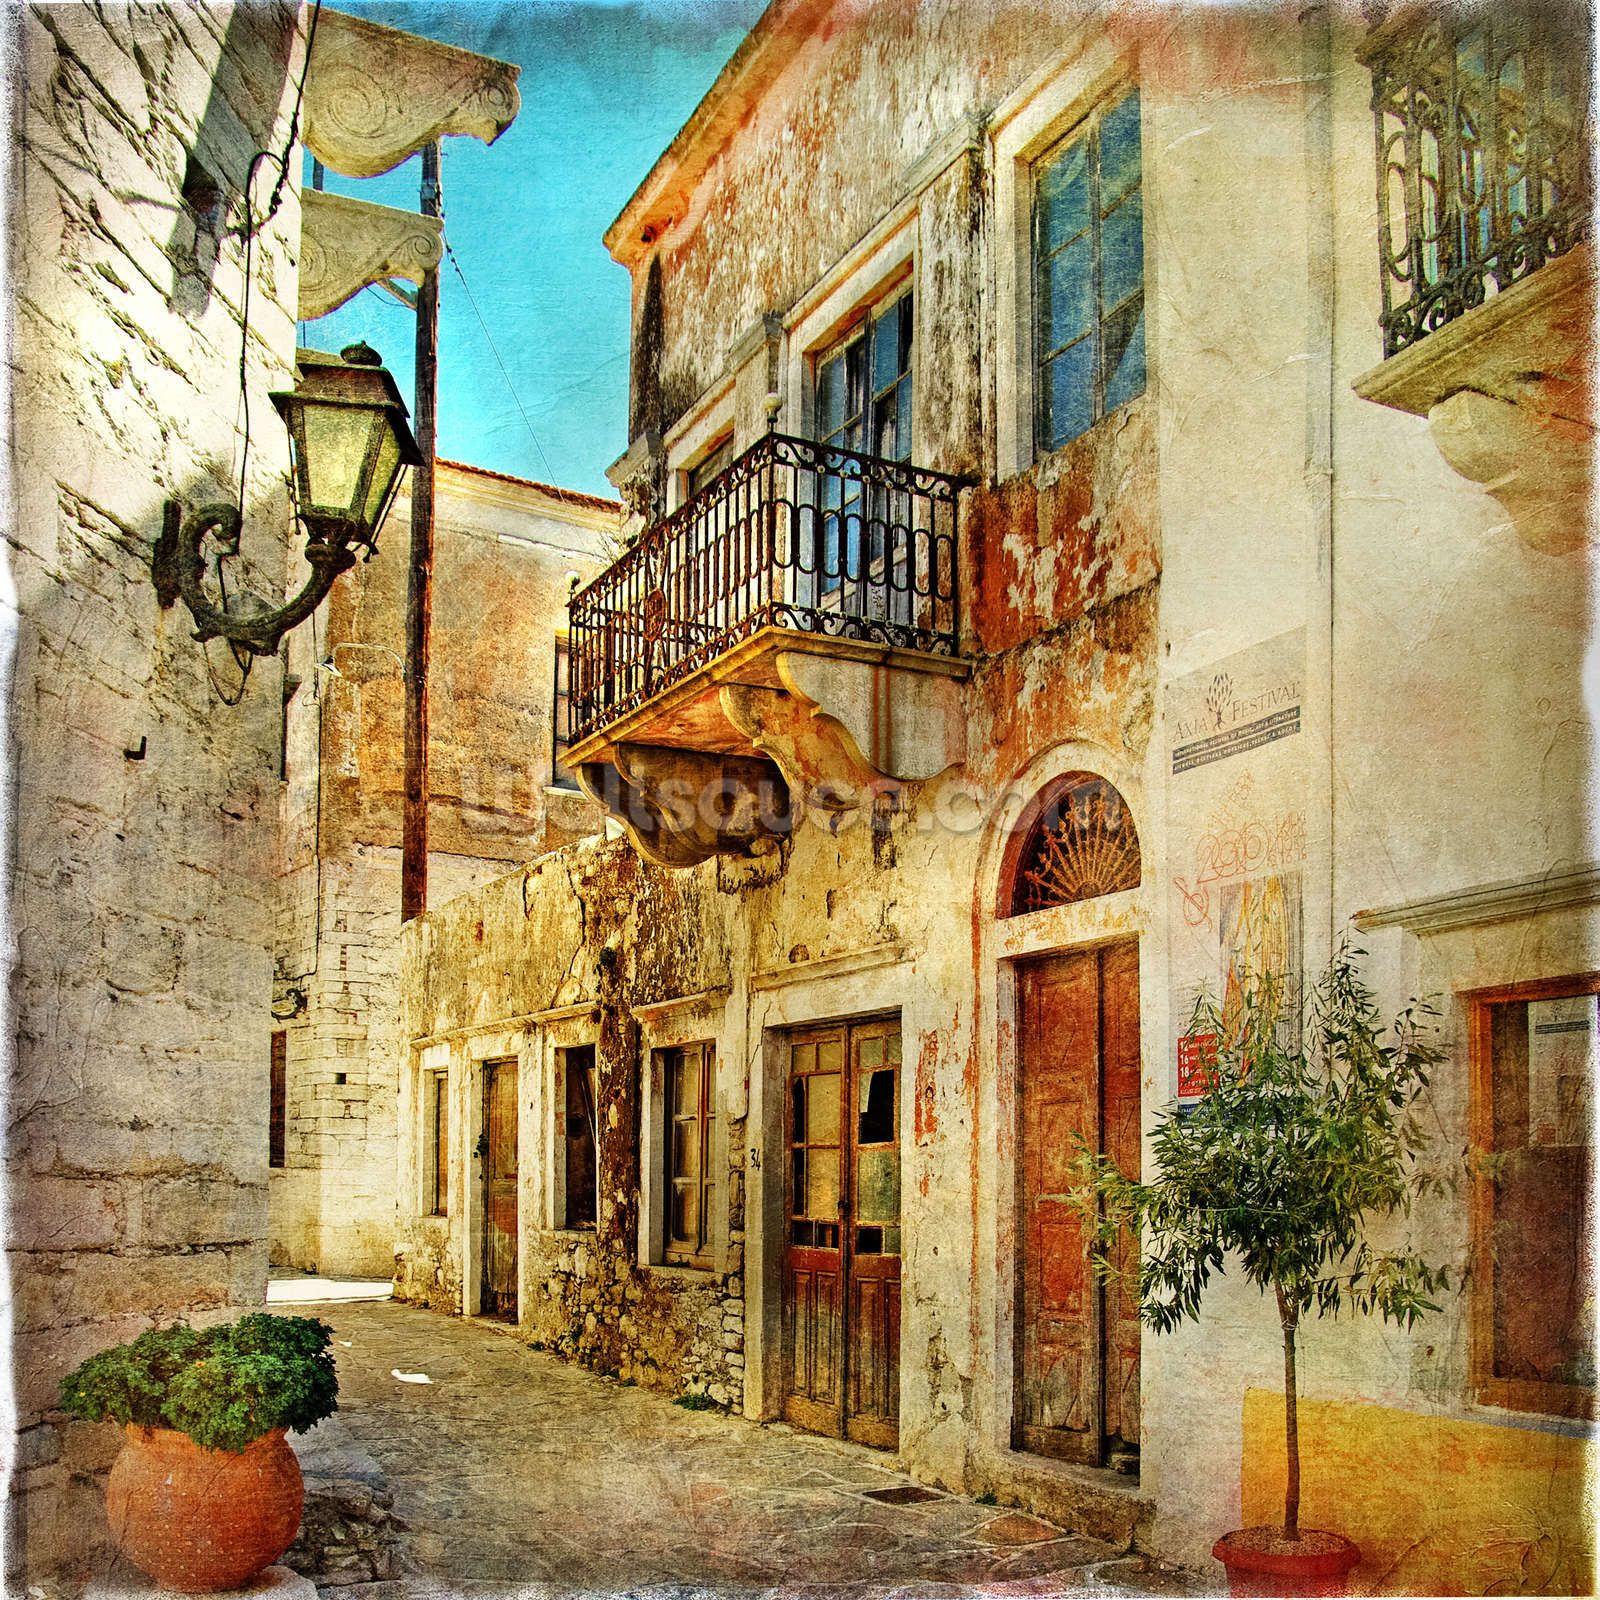 Old Town Greece Wall Mural | Wall murals, Wallpaper and Walls